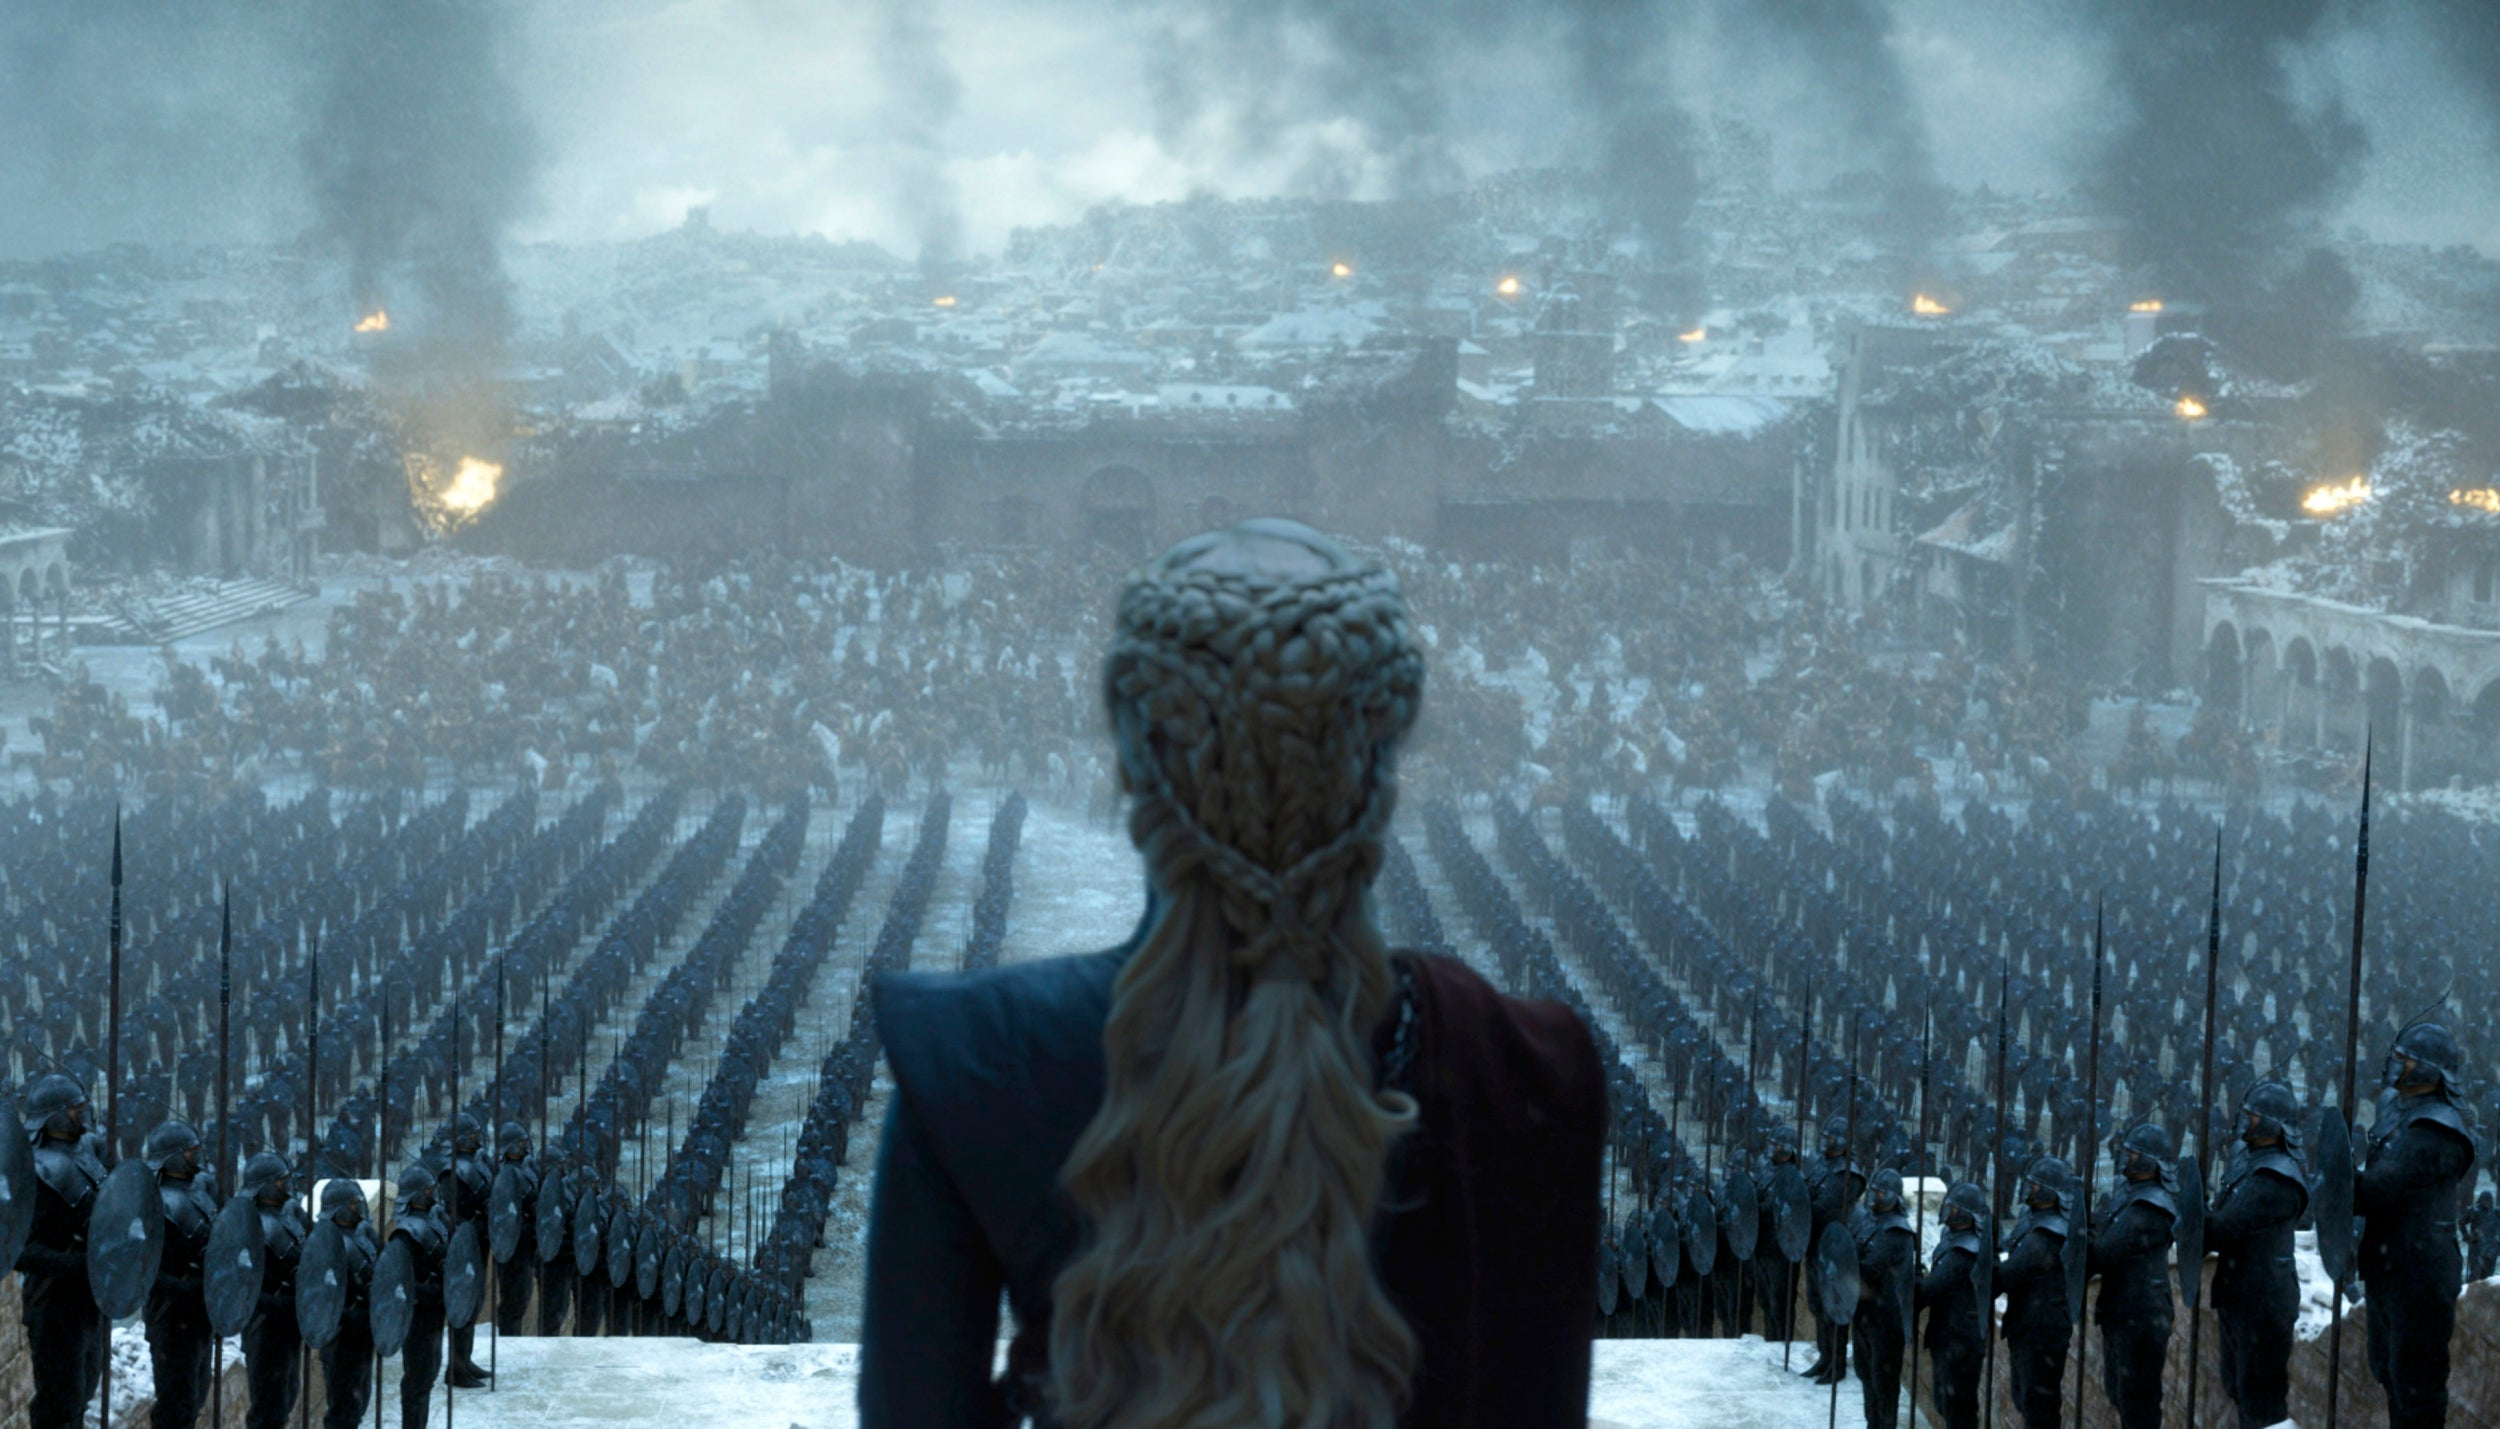 Slavoj Zizek: Game of Thrones played to fears of revolution and political women and left us no better off than before